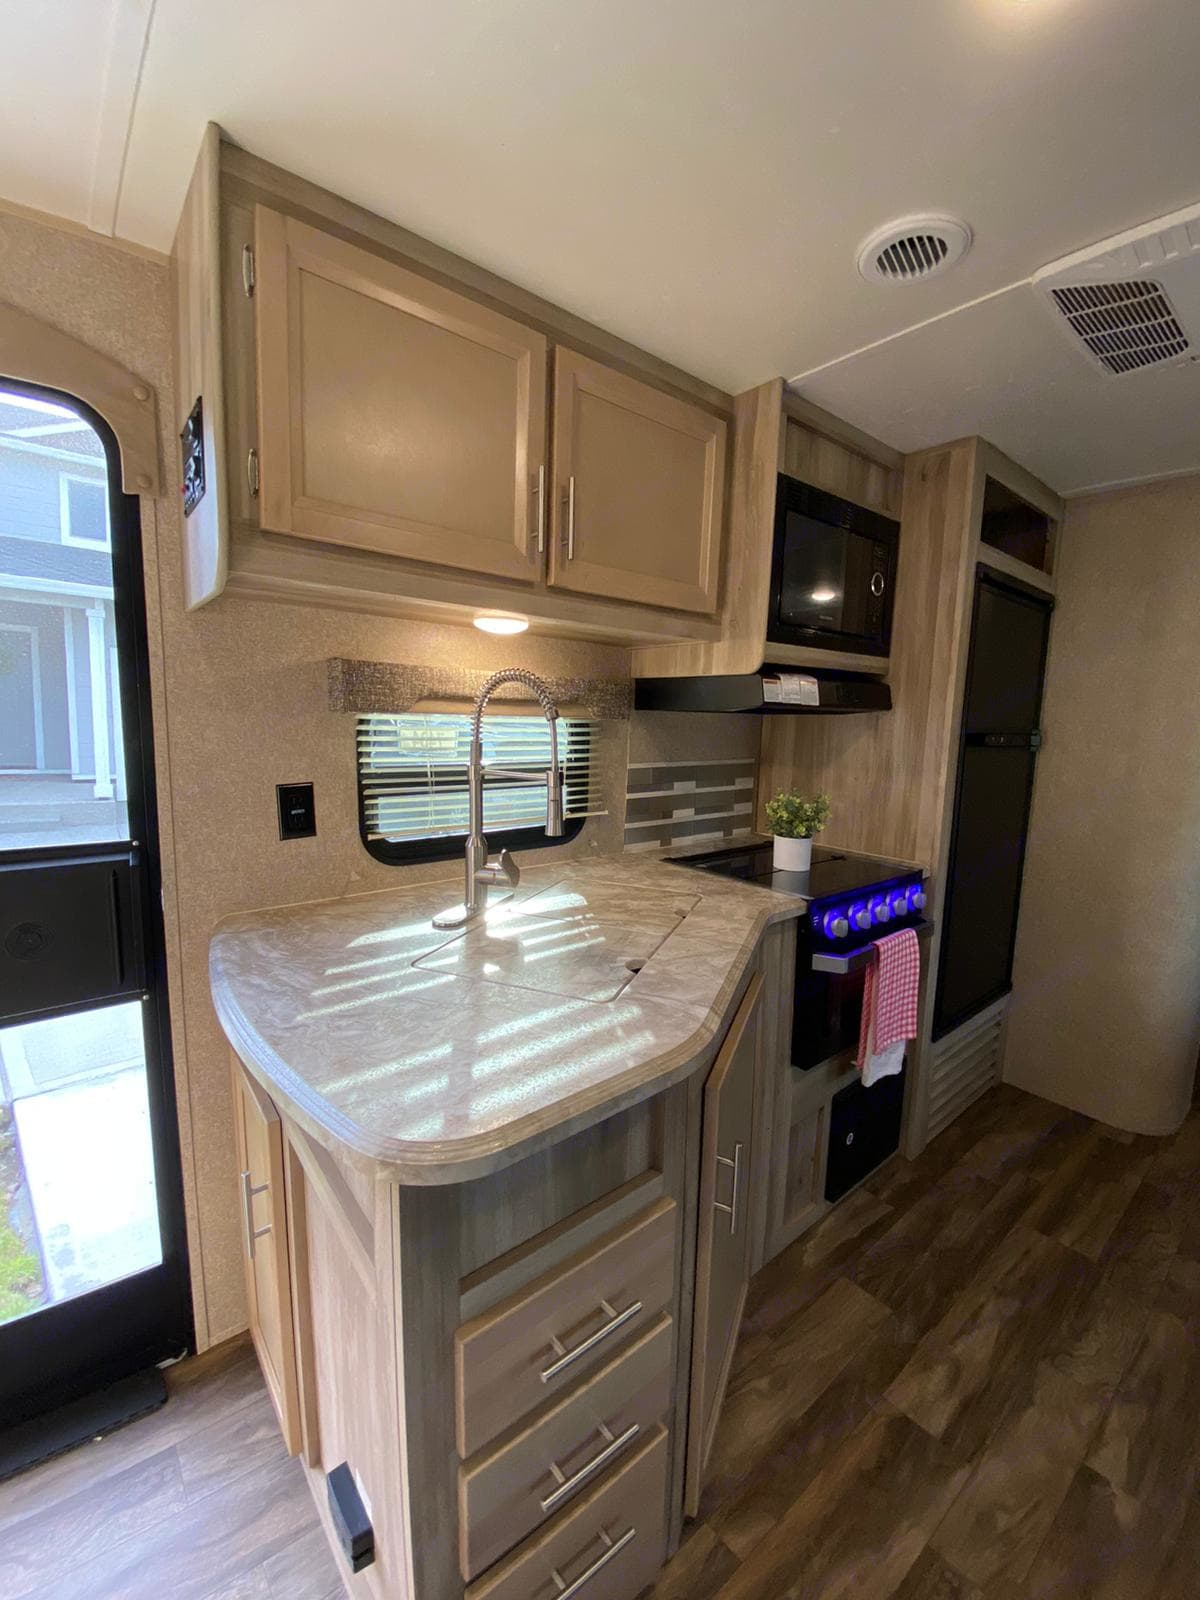 Pots, pans, cups and plates included. Coachmen Catalina 2019